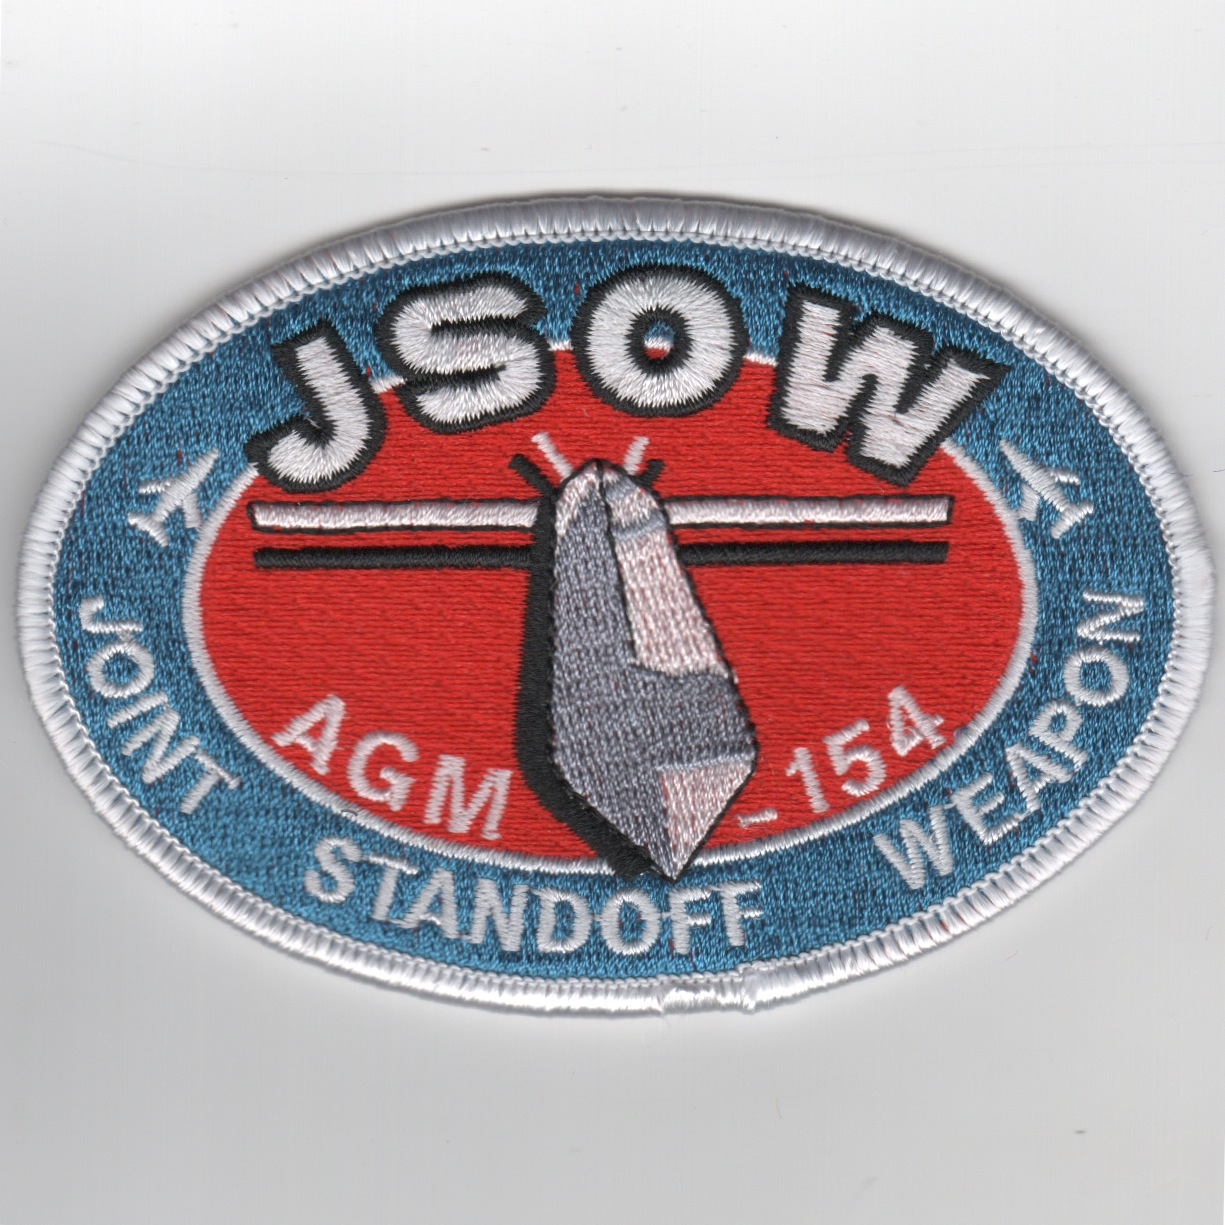 AGM-154 'JSOW' Patch (White Oval)